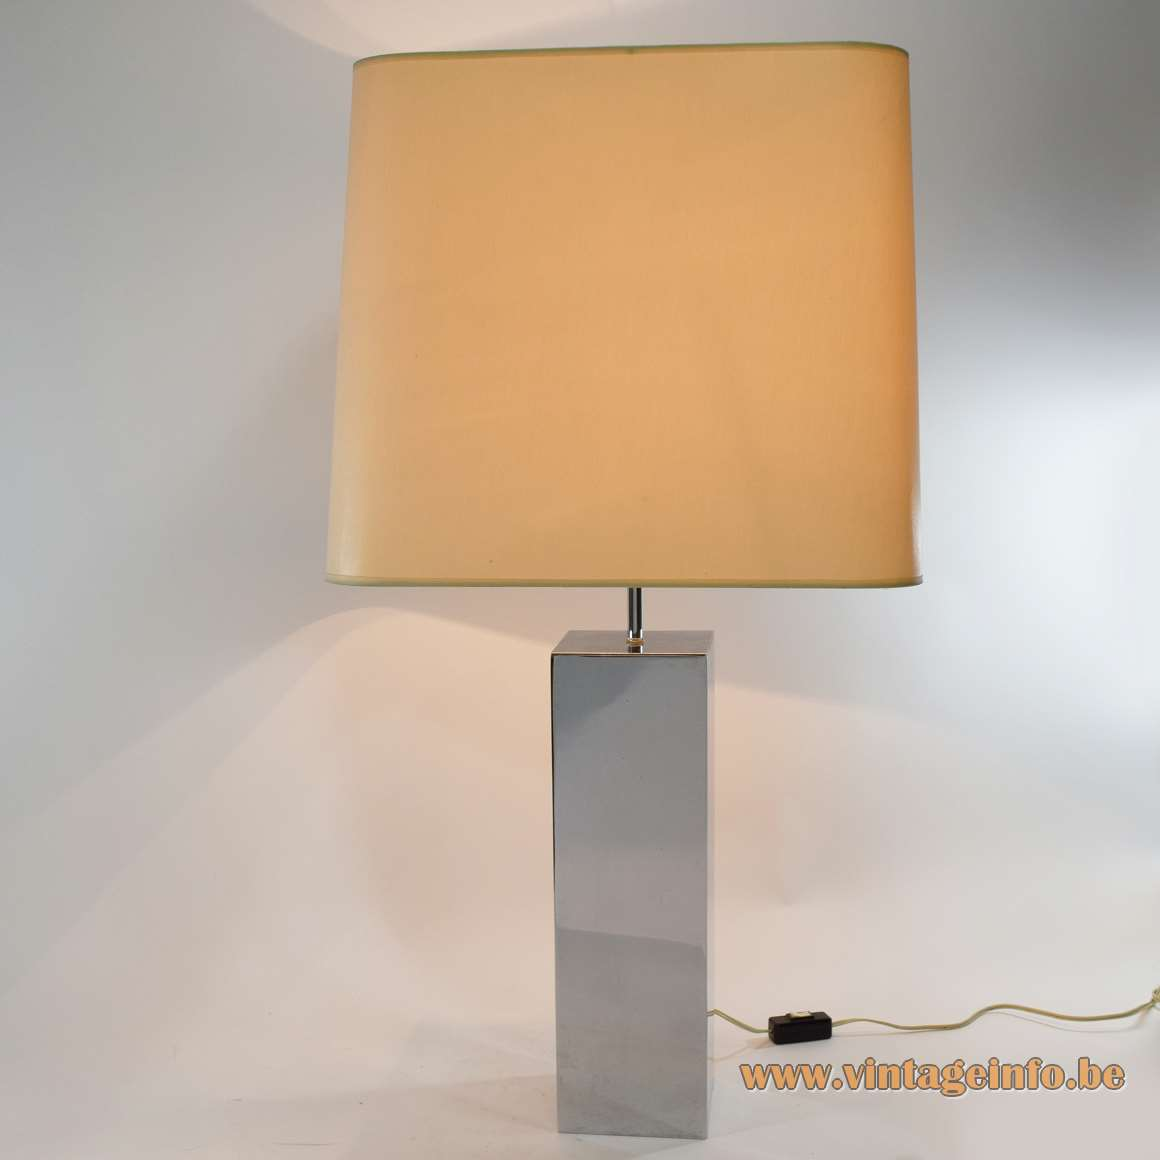 1970s chrome rectangular/beam table lamp 2 E27 sockets fabric lampshade adjustable geometric MCM